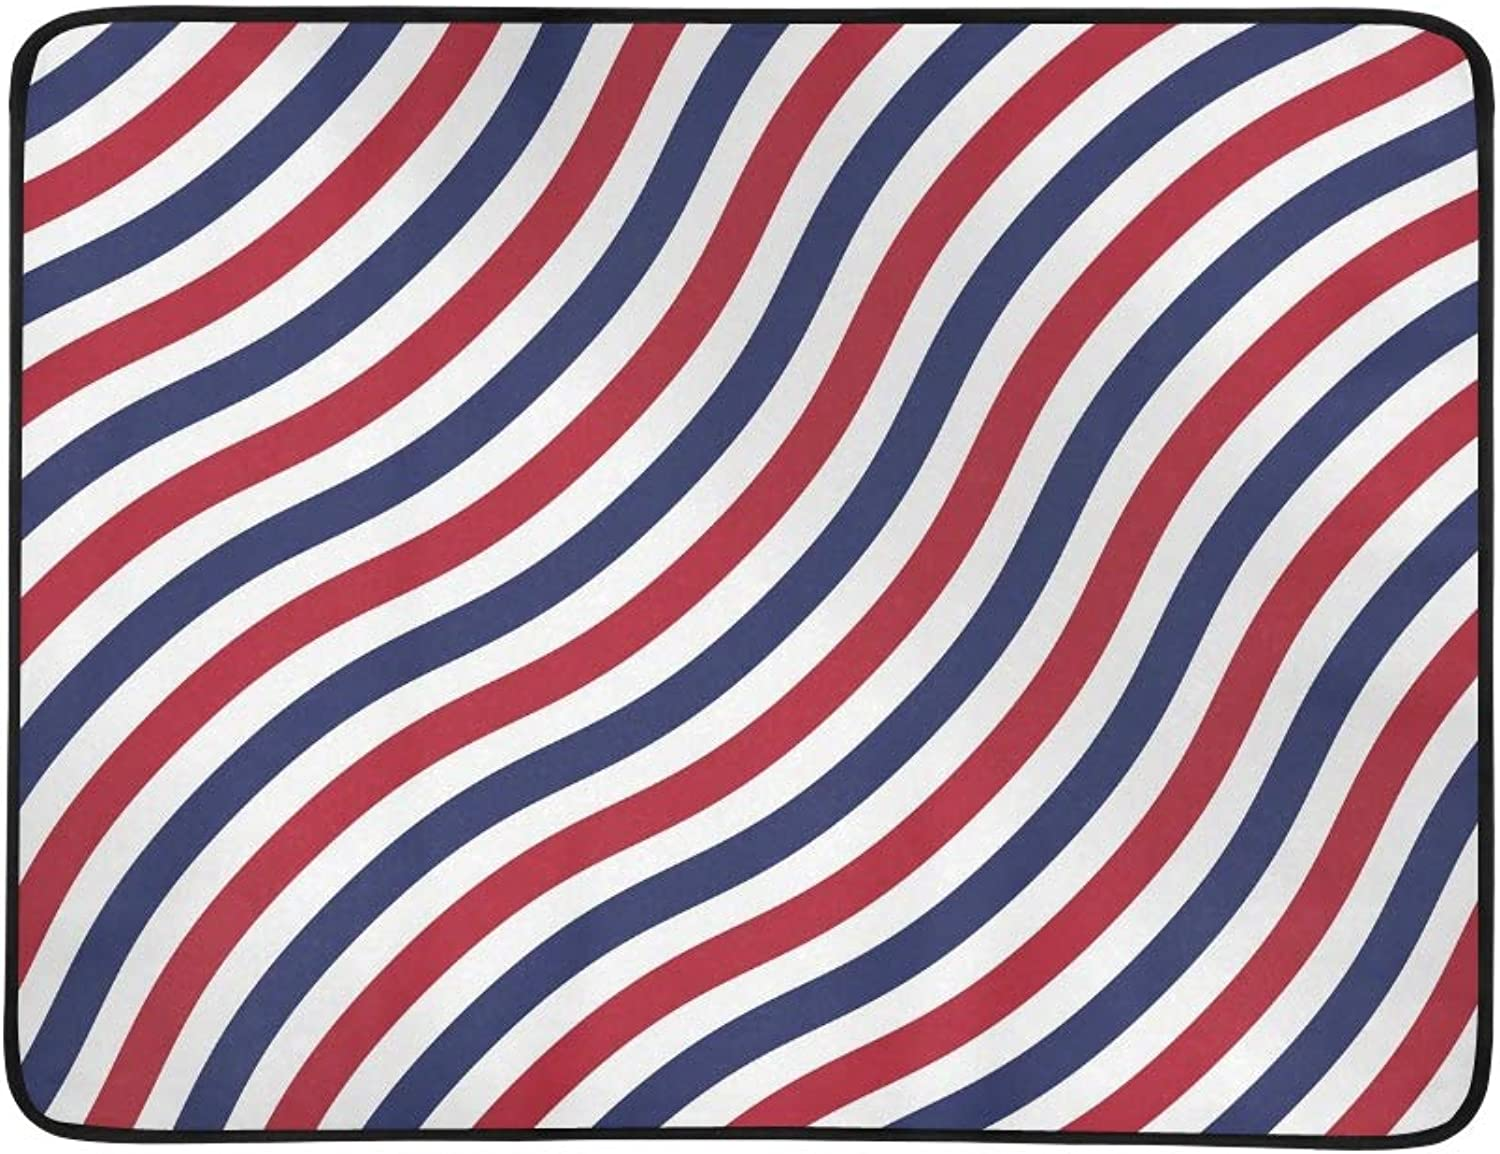 Patriotic American Stripes On White Portable and Foldable Blanket Mat 60x78 Inch Handy Mat for Camping Picnic Beach Indoor Outdoor Travel